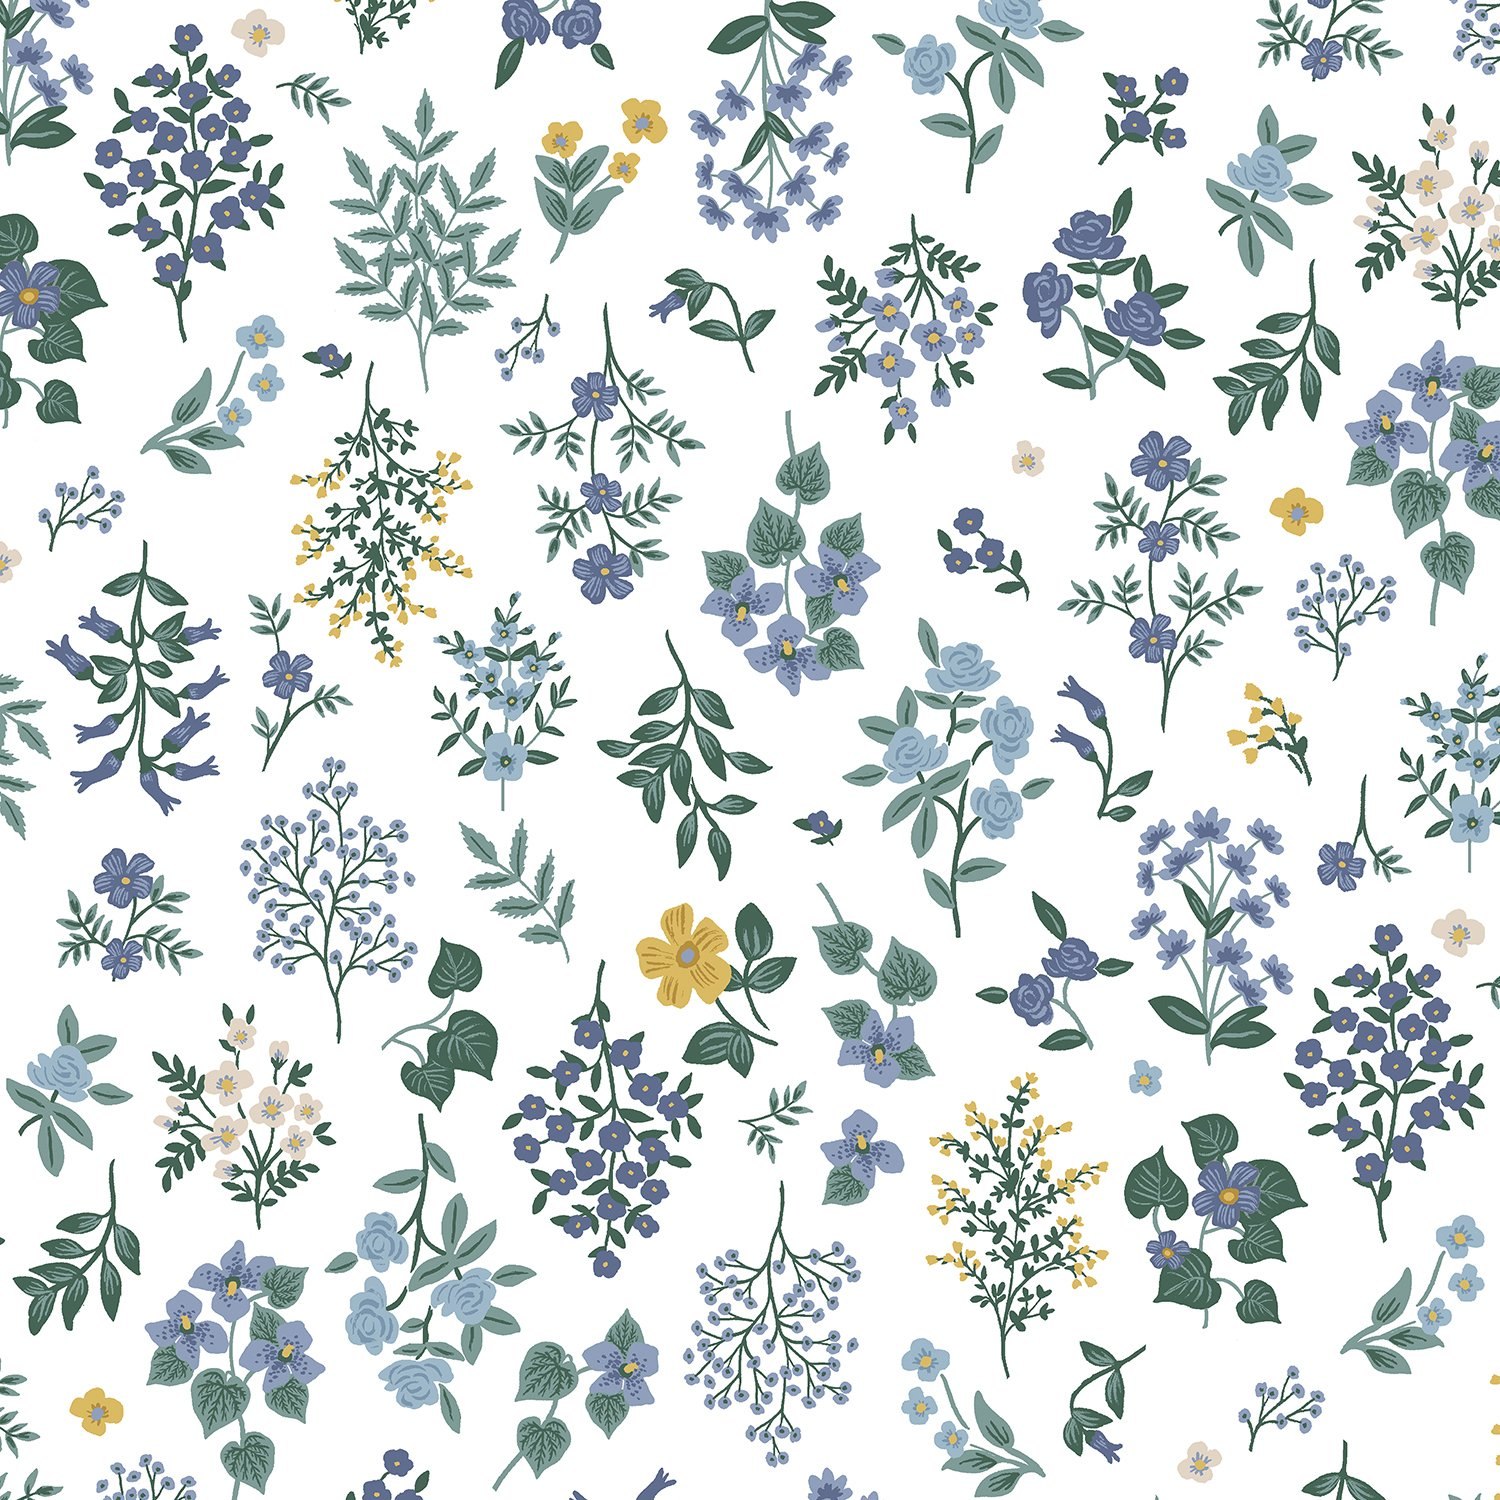 Hawthorne Periwinkle - Strawberry Fields Cotton - Rifle Paper Co.